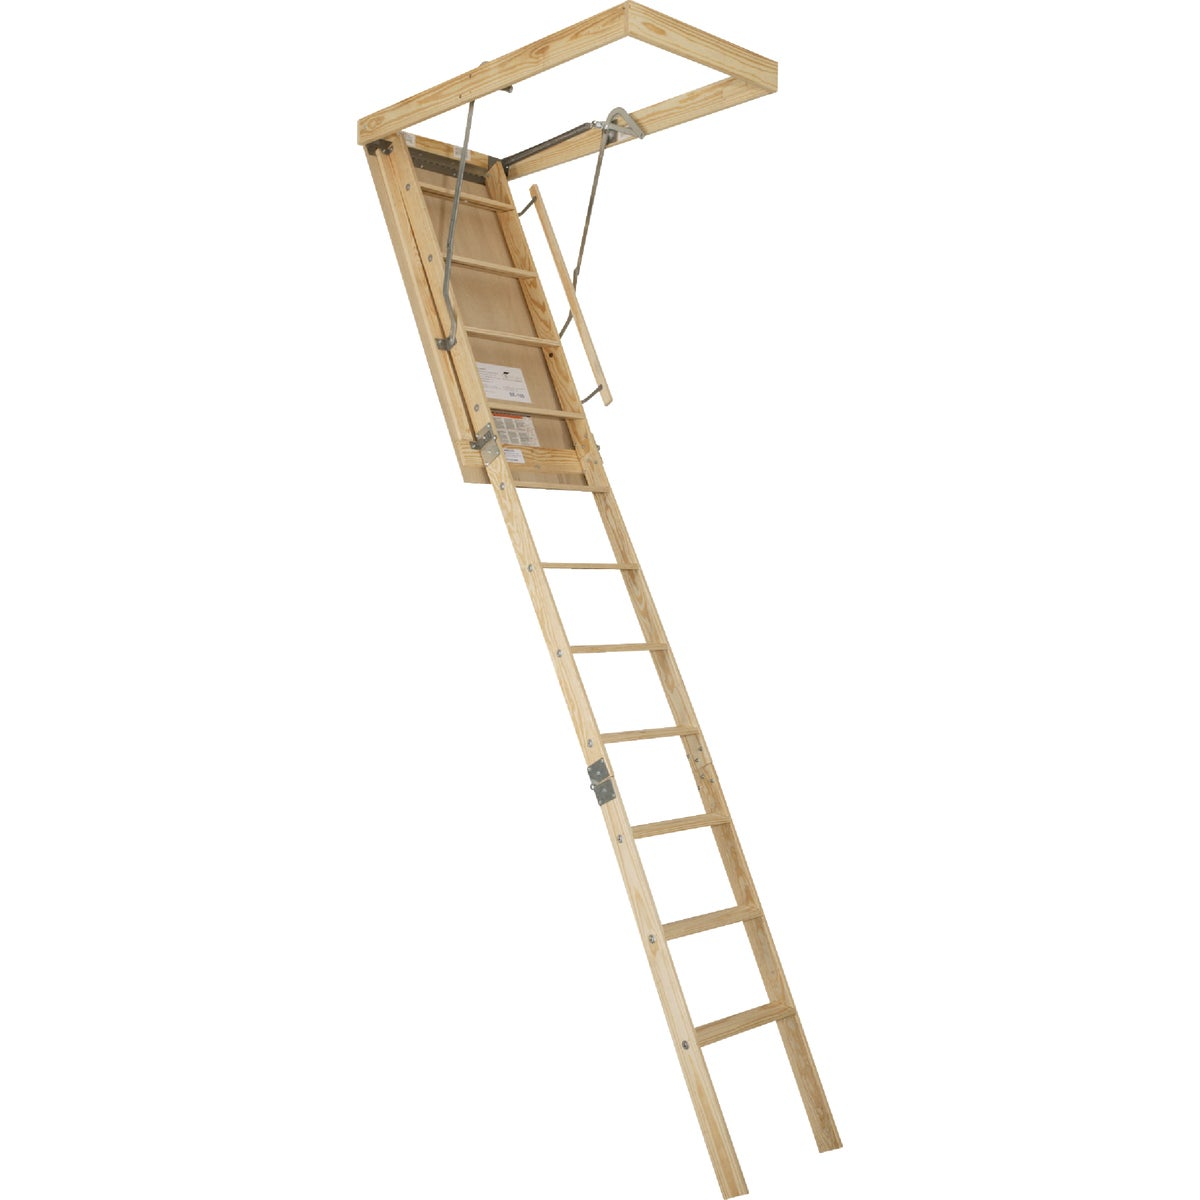 22X120 FIRE ATTIC STAIR - BET100F by Louisville Ladder